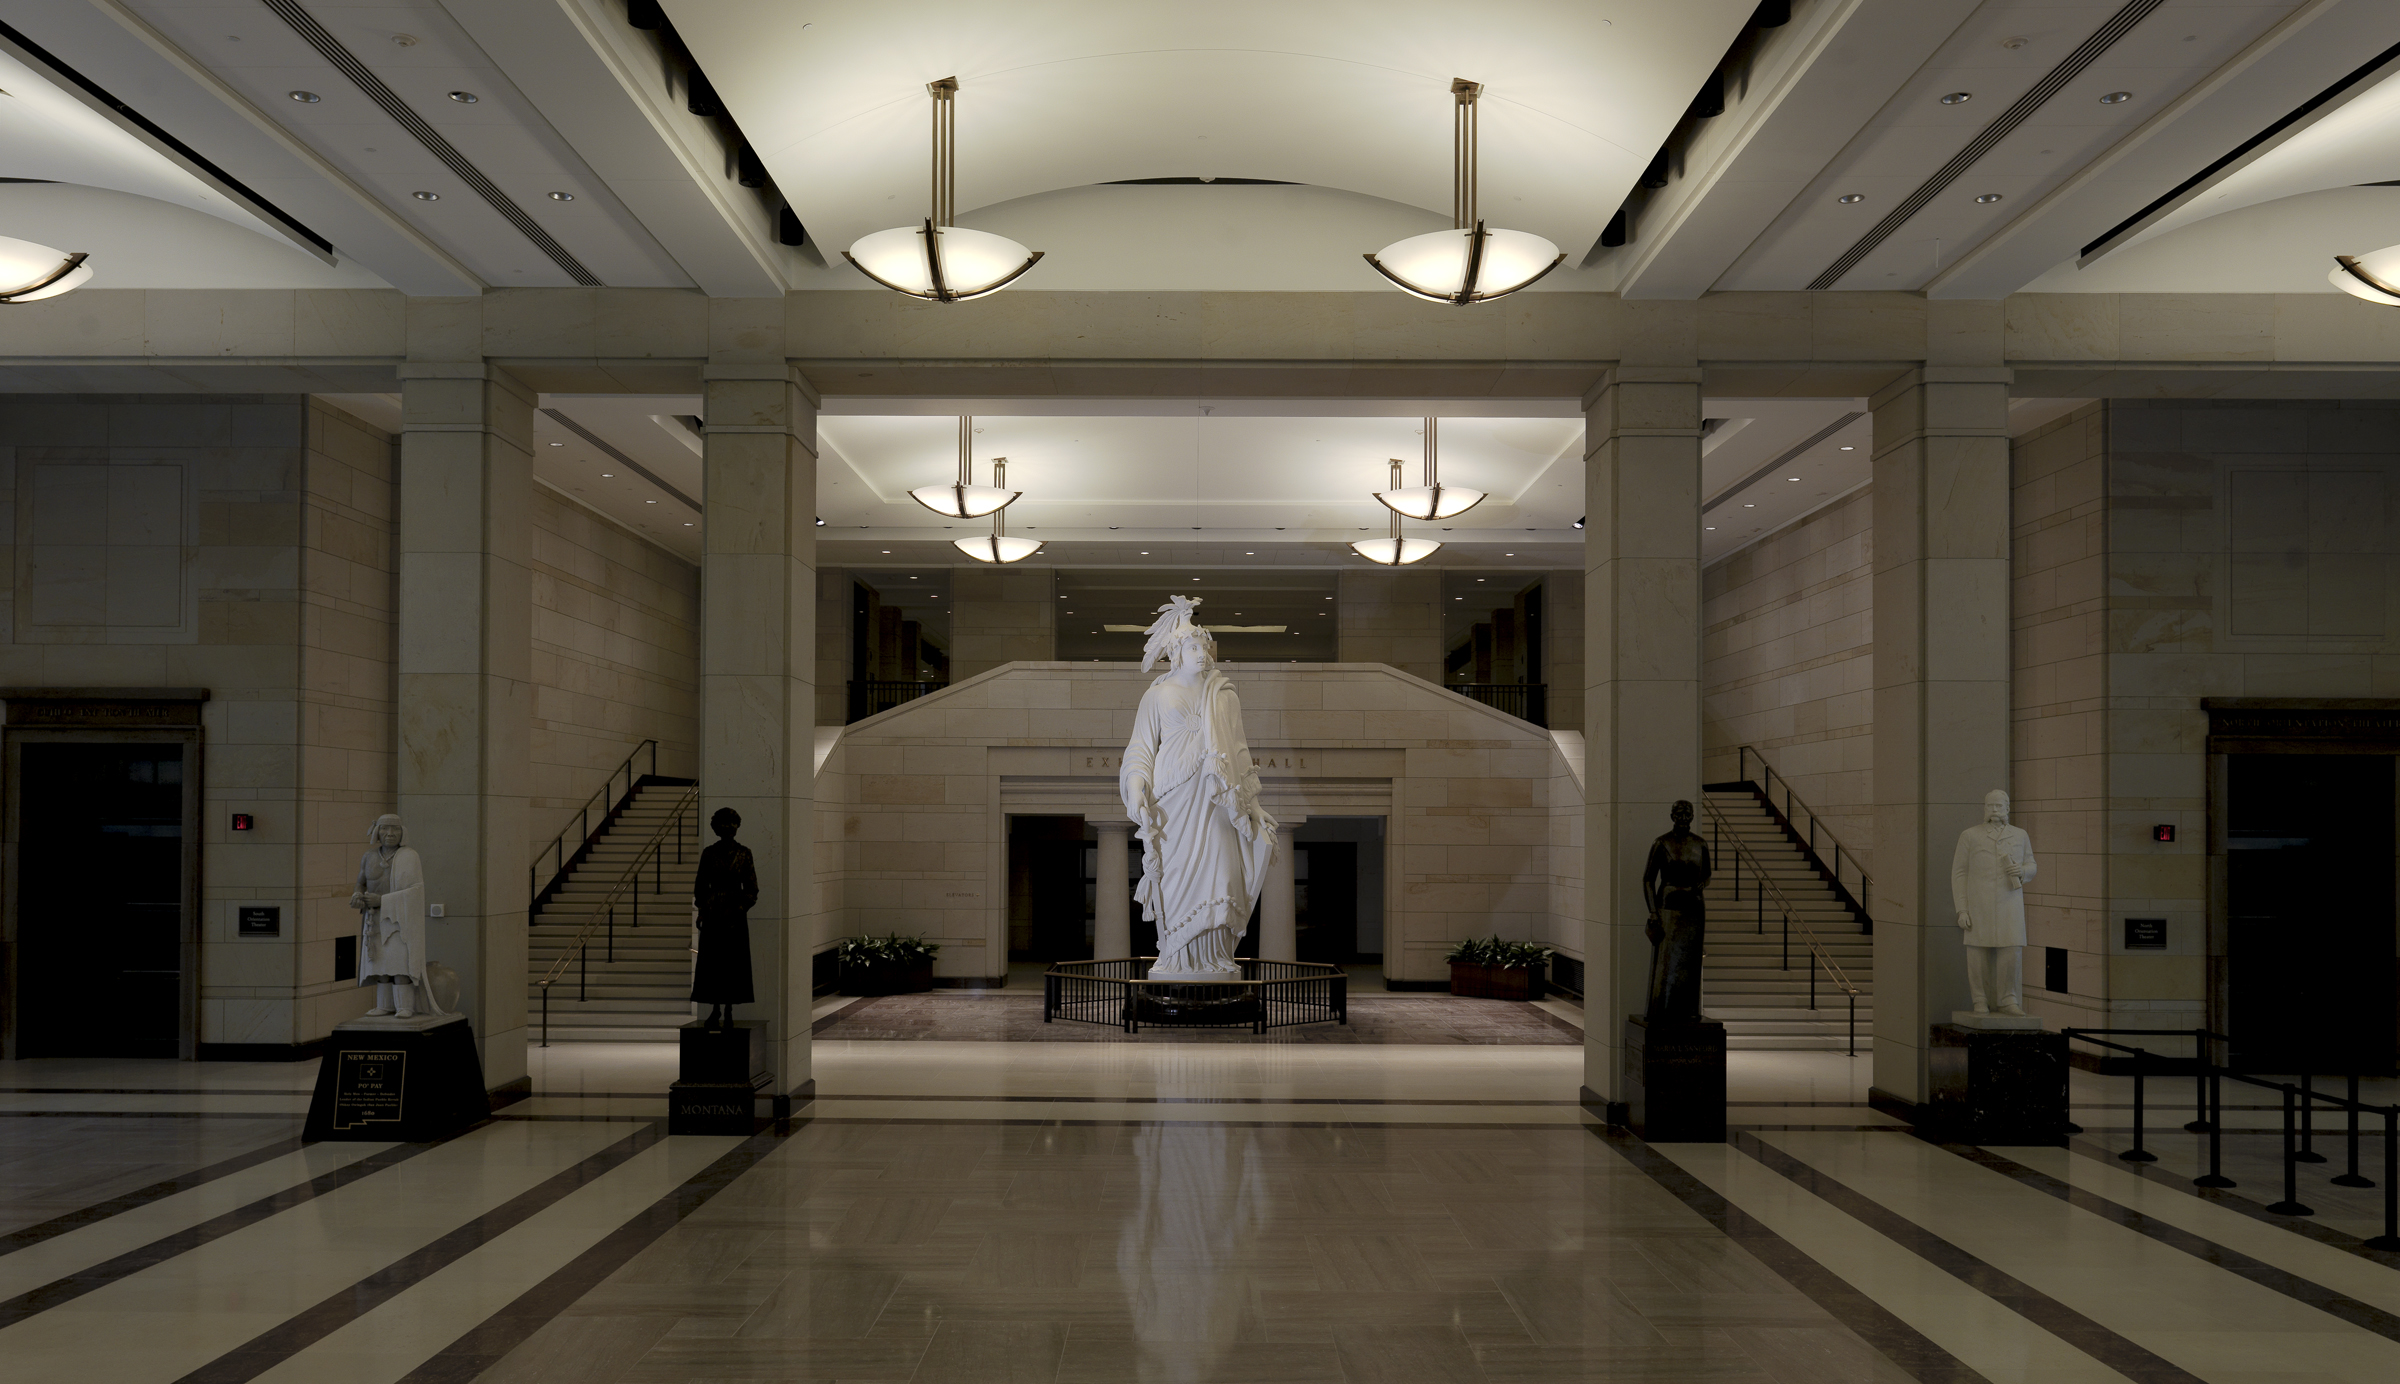 Statue of Freedom's plaster model in Emancipation-Hall of the Capitol Visitor Center. Photo taken on October 27, 2008.